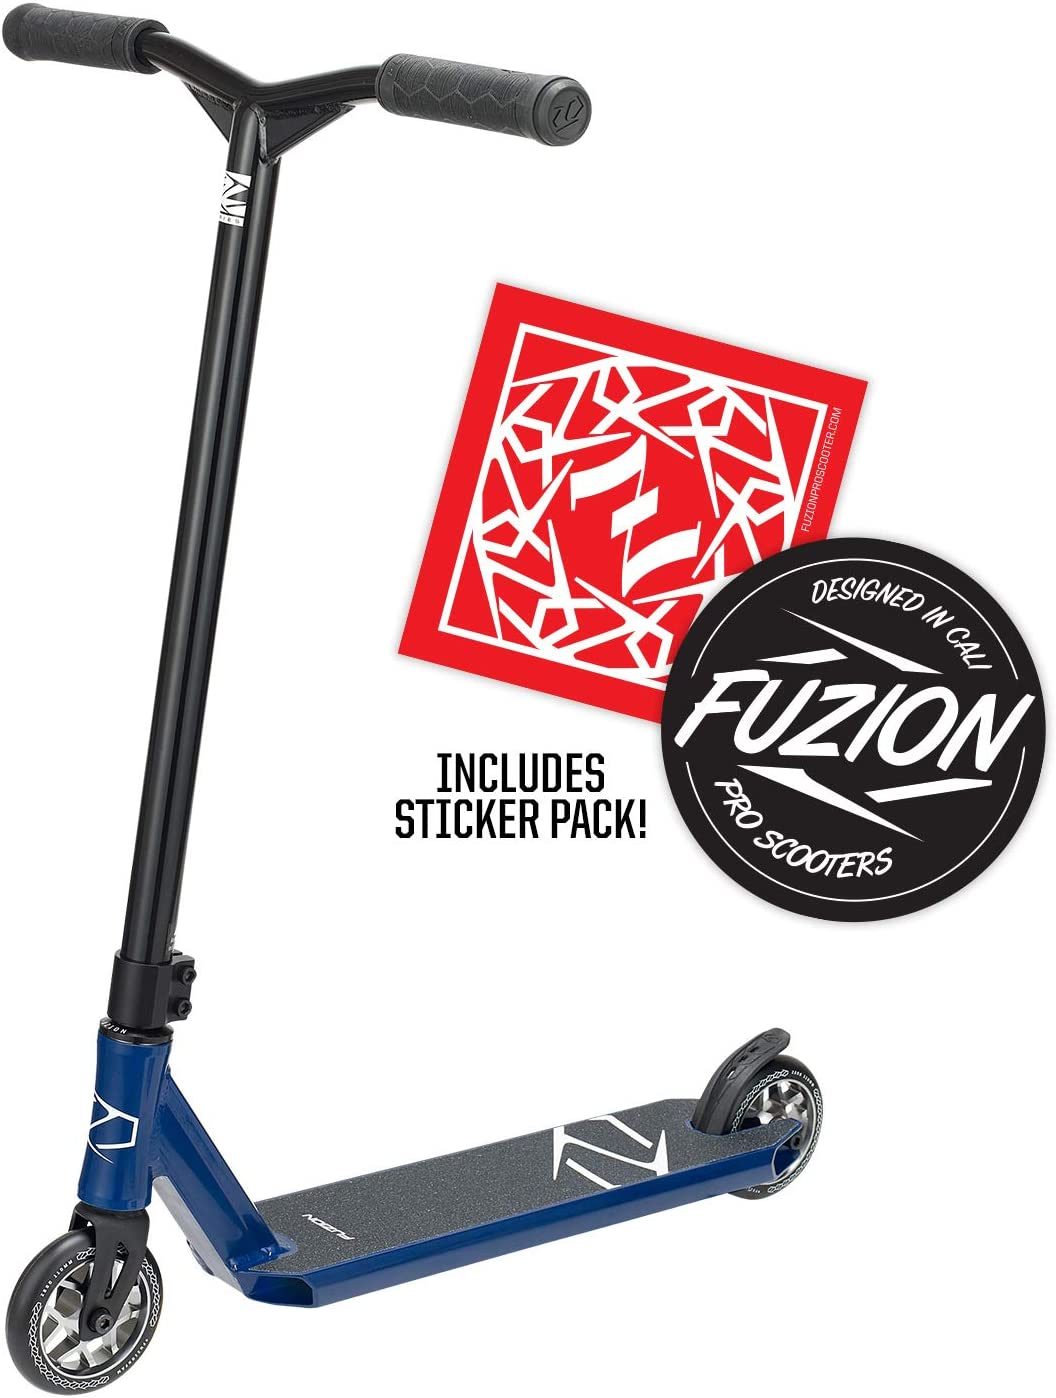 Smooth Fuzion Z250 Pro Scooters Teens and Adults Freestyle Kick Scooter for Boys and Girls Intermediate and Beginner Stunt Scooters for Kids 8 Years and Up Trick Scooter Durable